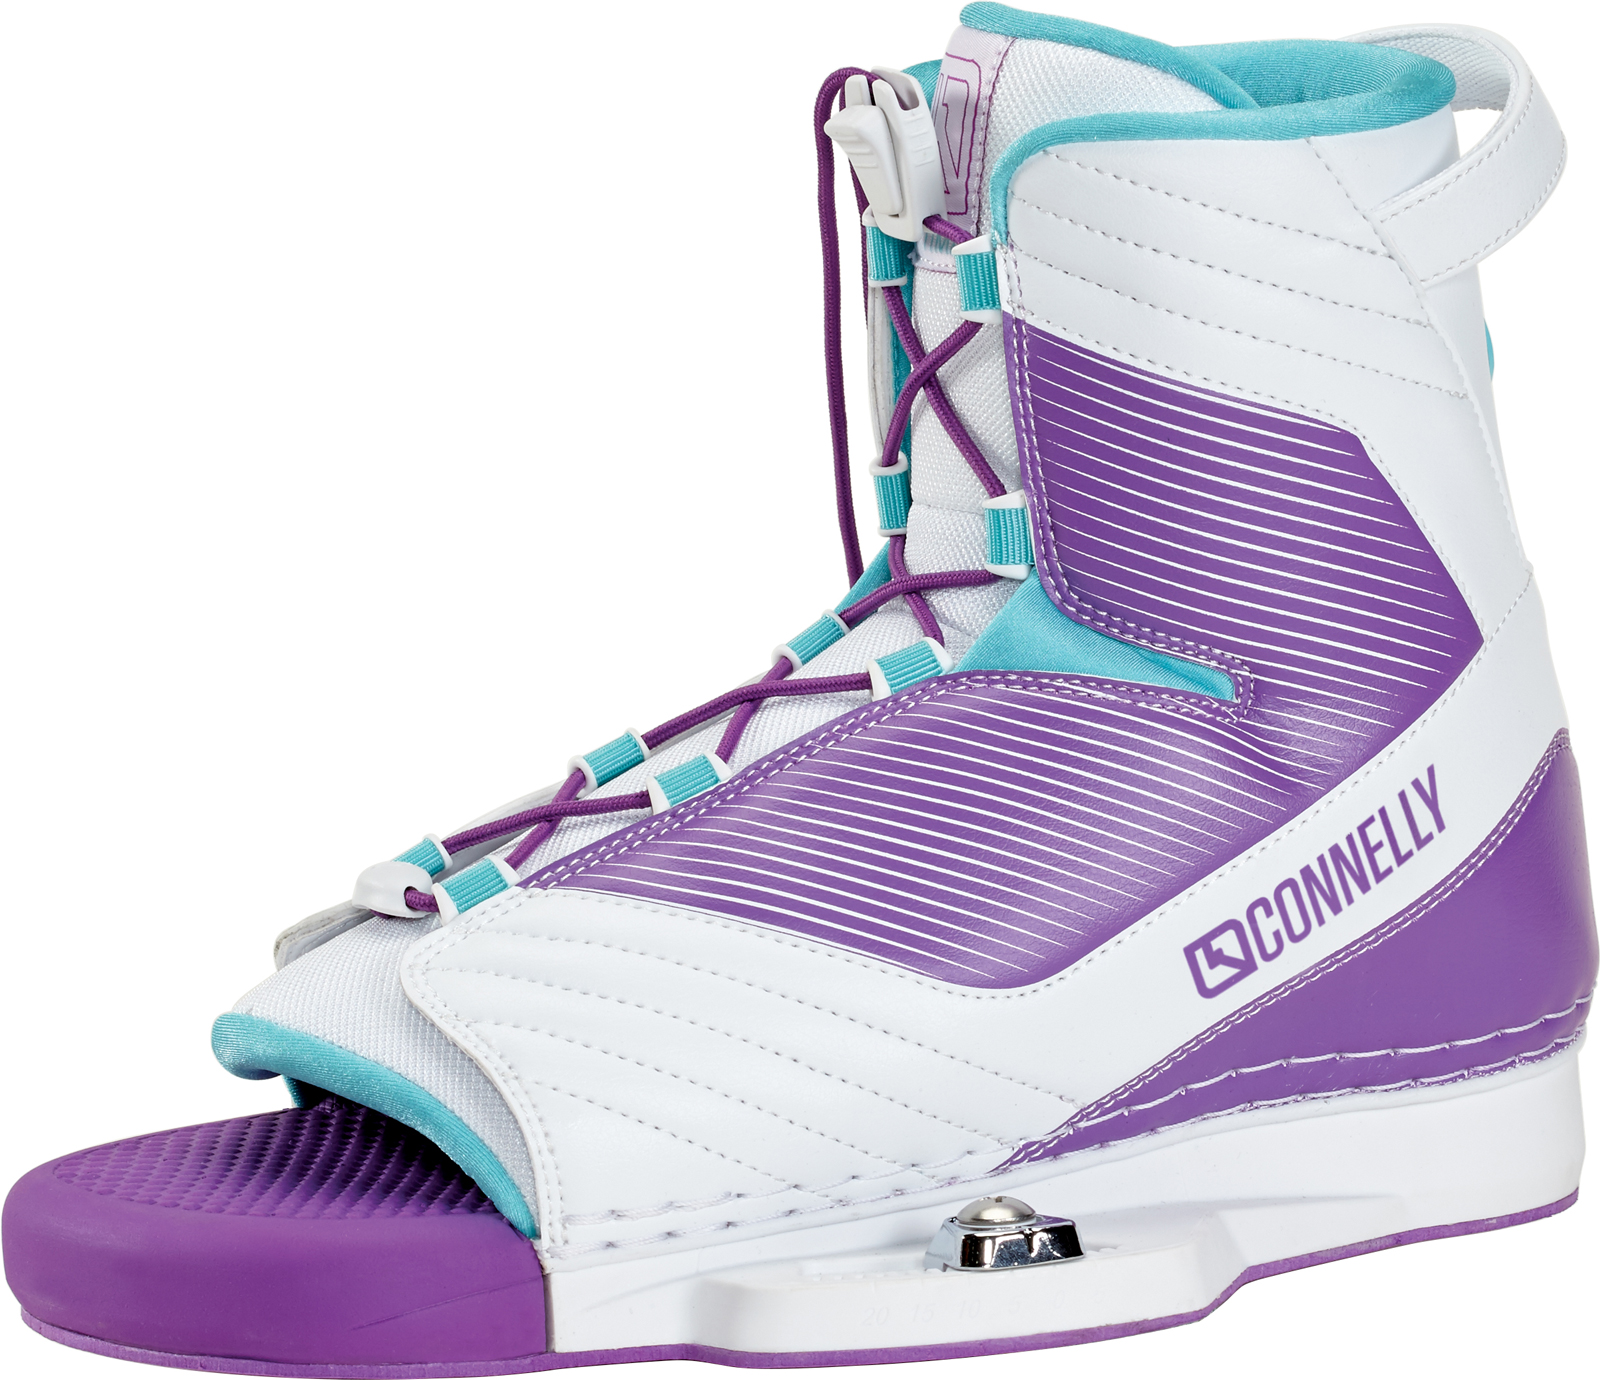 OPTIMA WOMEN'S BOOT CONNELLY 2018